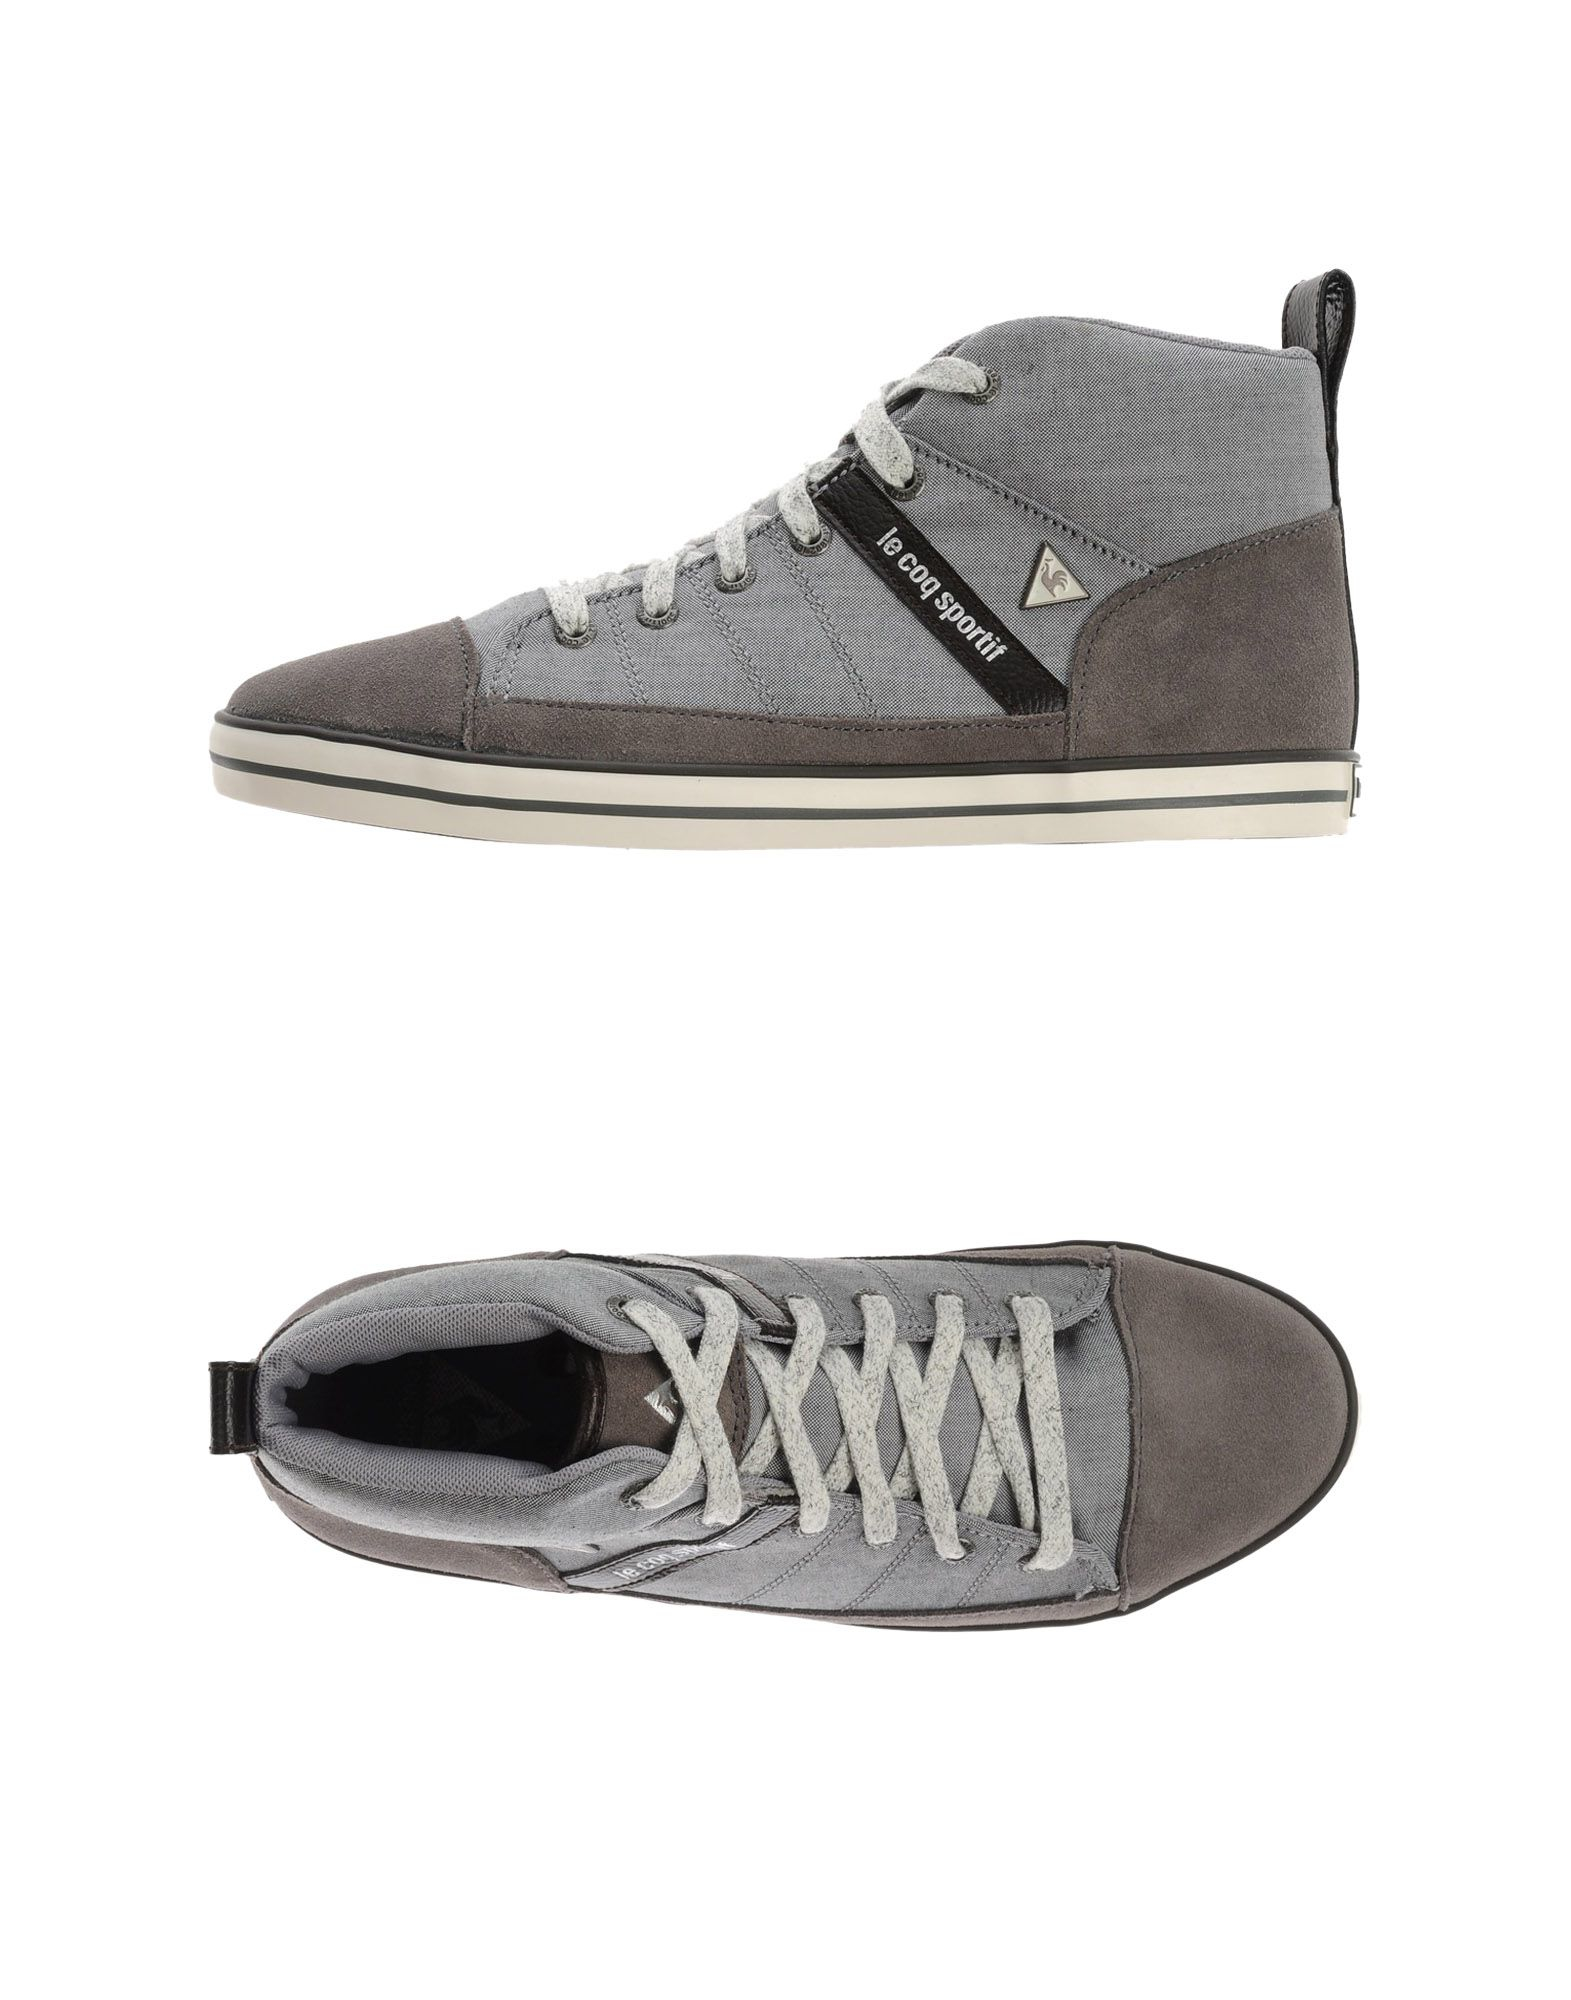 078c564f6695 Lyst - Le Coq Sportif High-tops   Trainers in Gray for Men